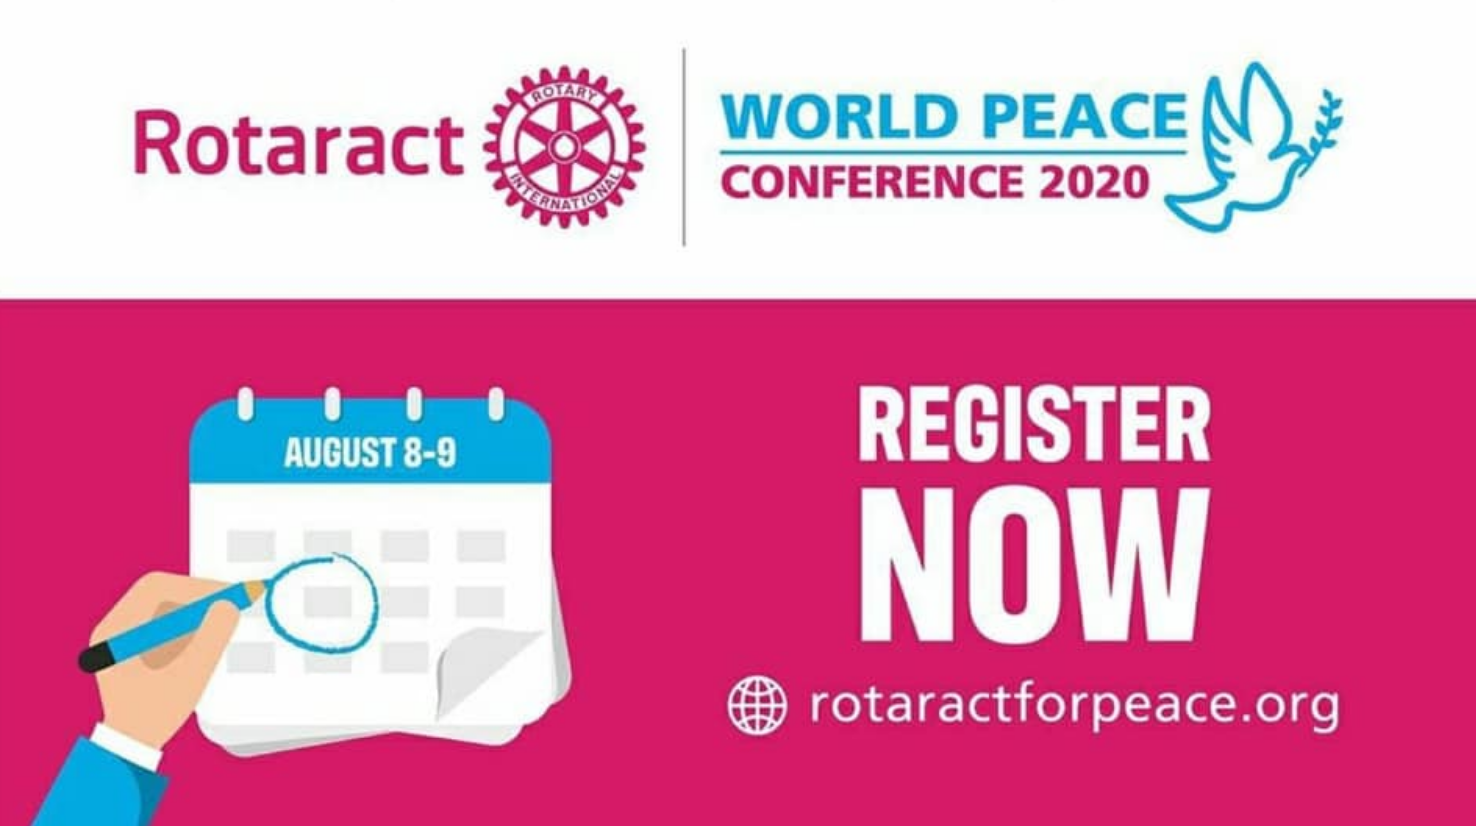 2020, rotaract, world peace conference, peace, frieden, friedenskonferenz